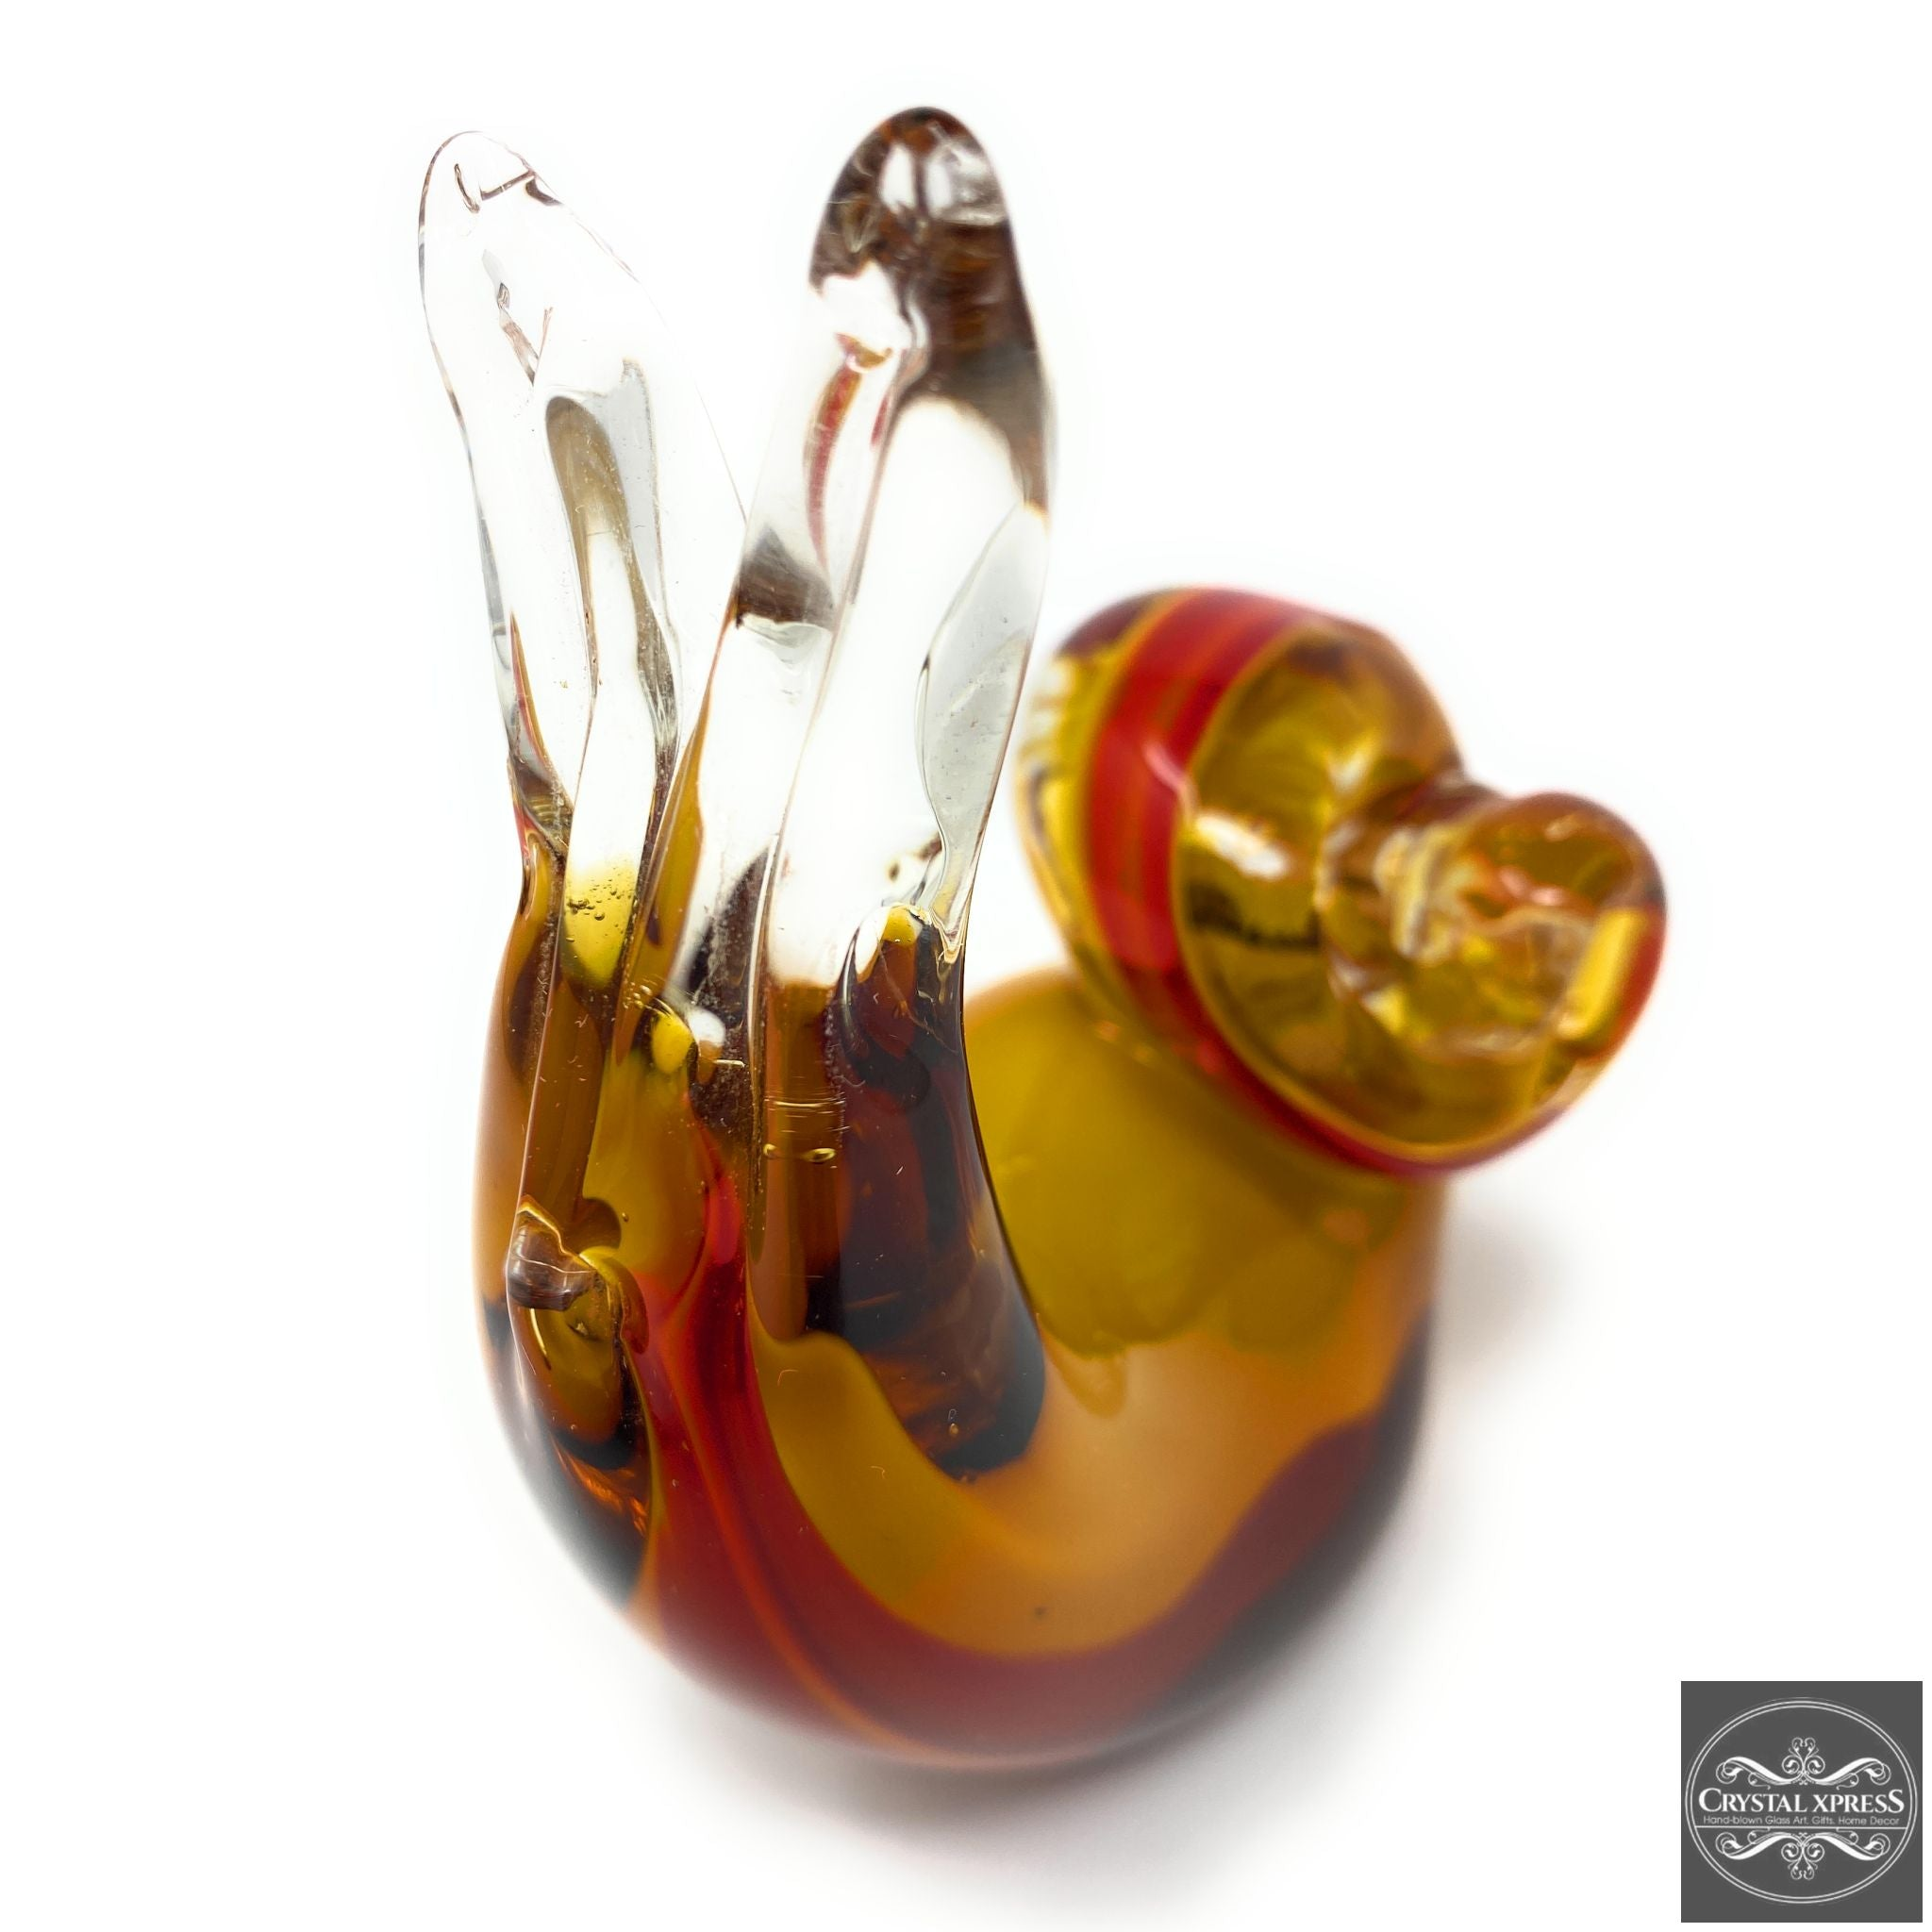 "New 4.5"" Hand Blown Glass Cute Snail Figurine Sculpture Red and Yellow Stained Glass Color"